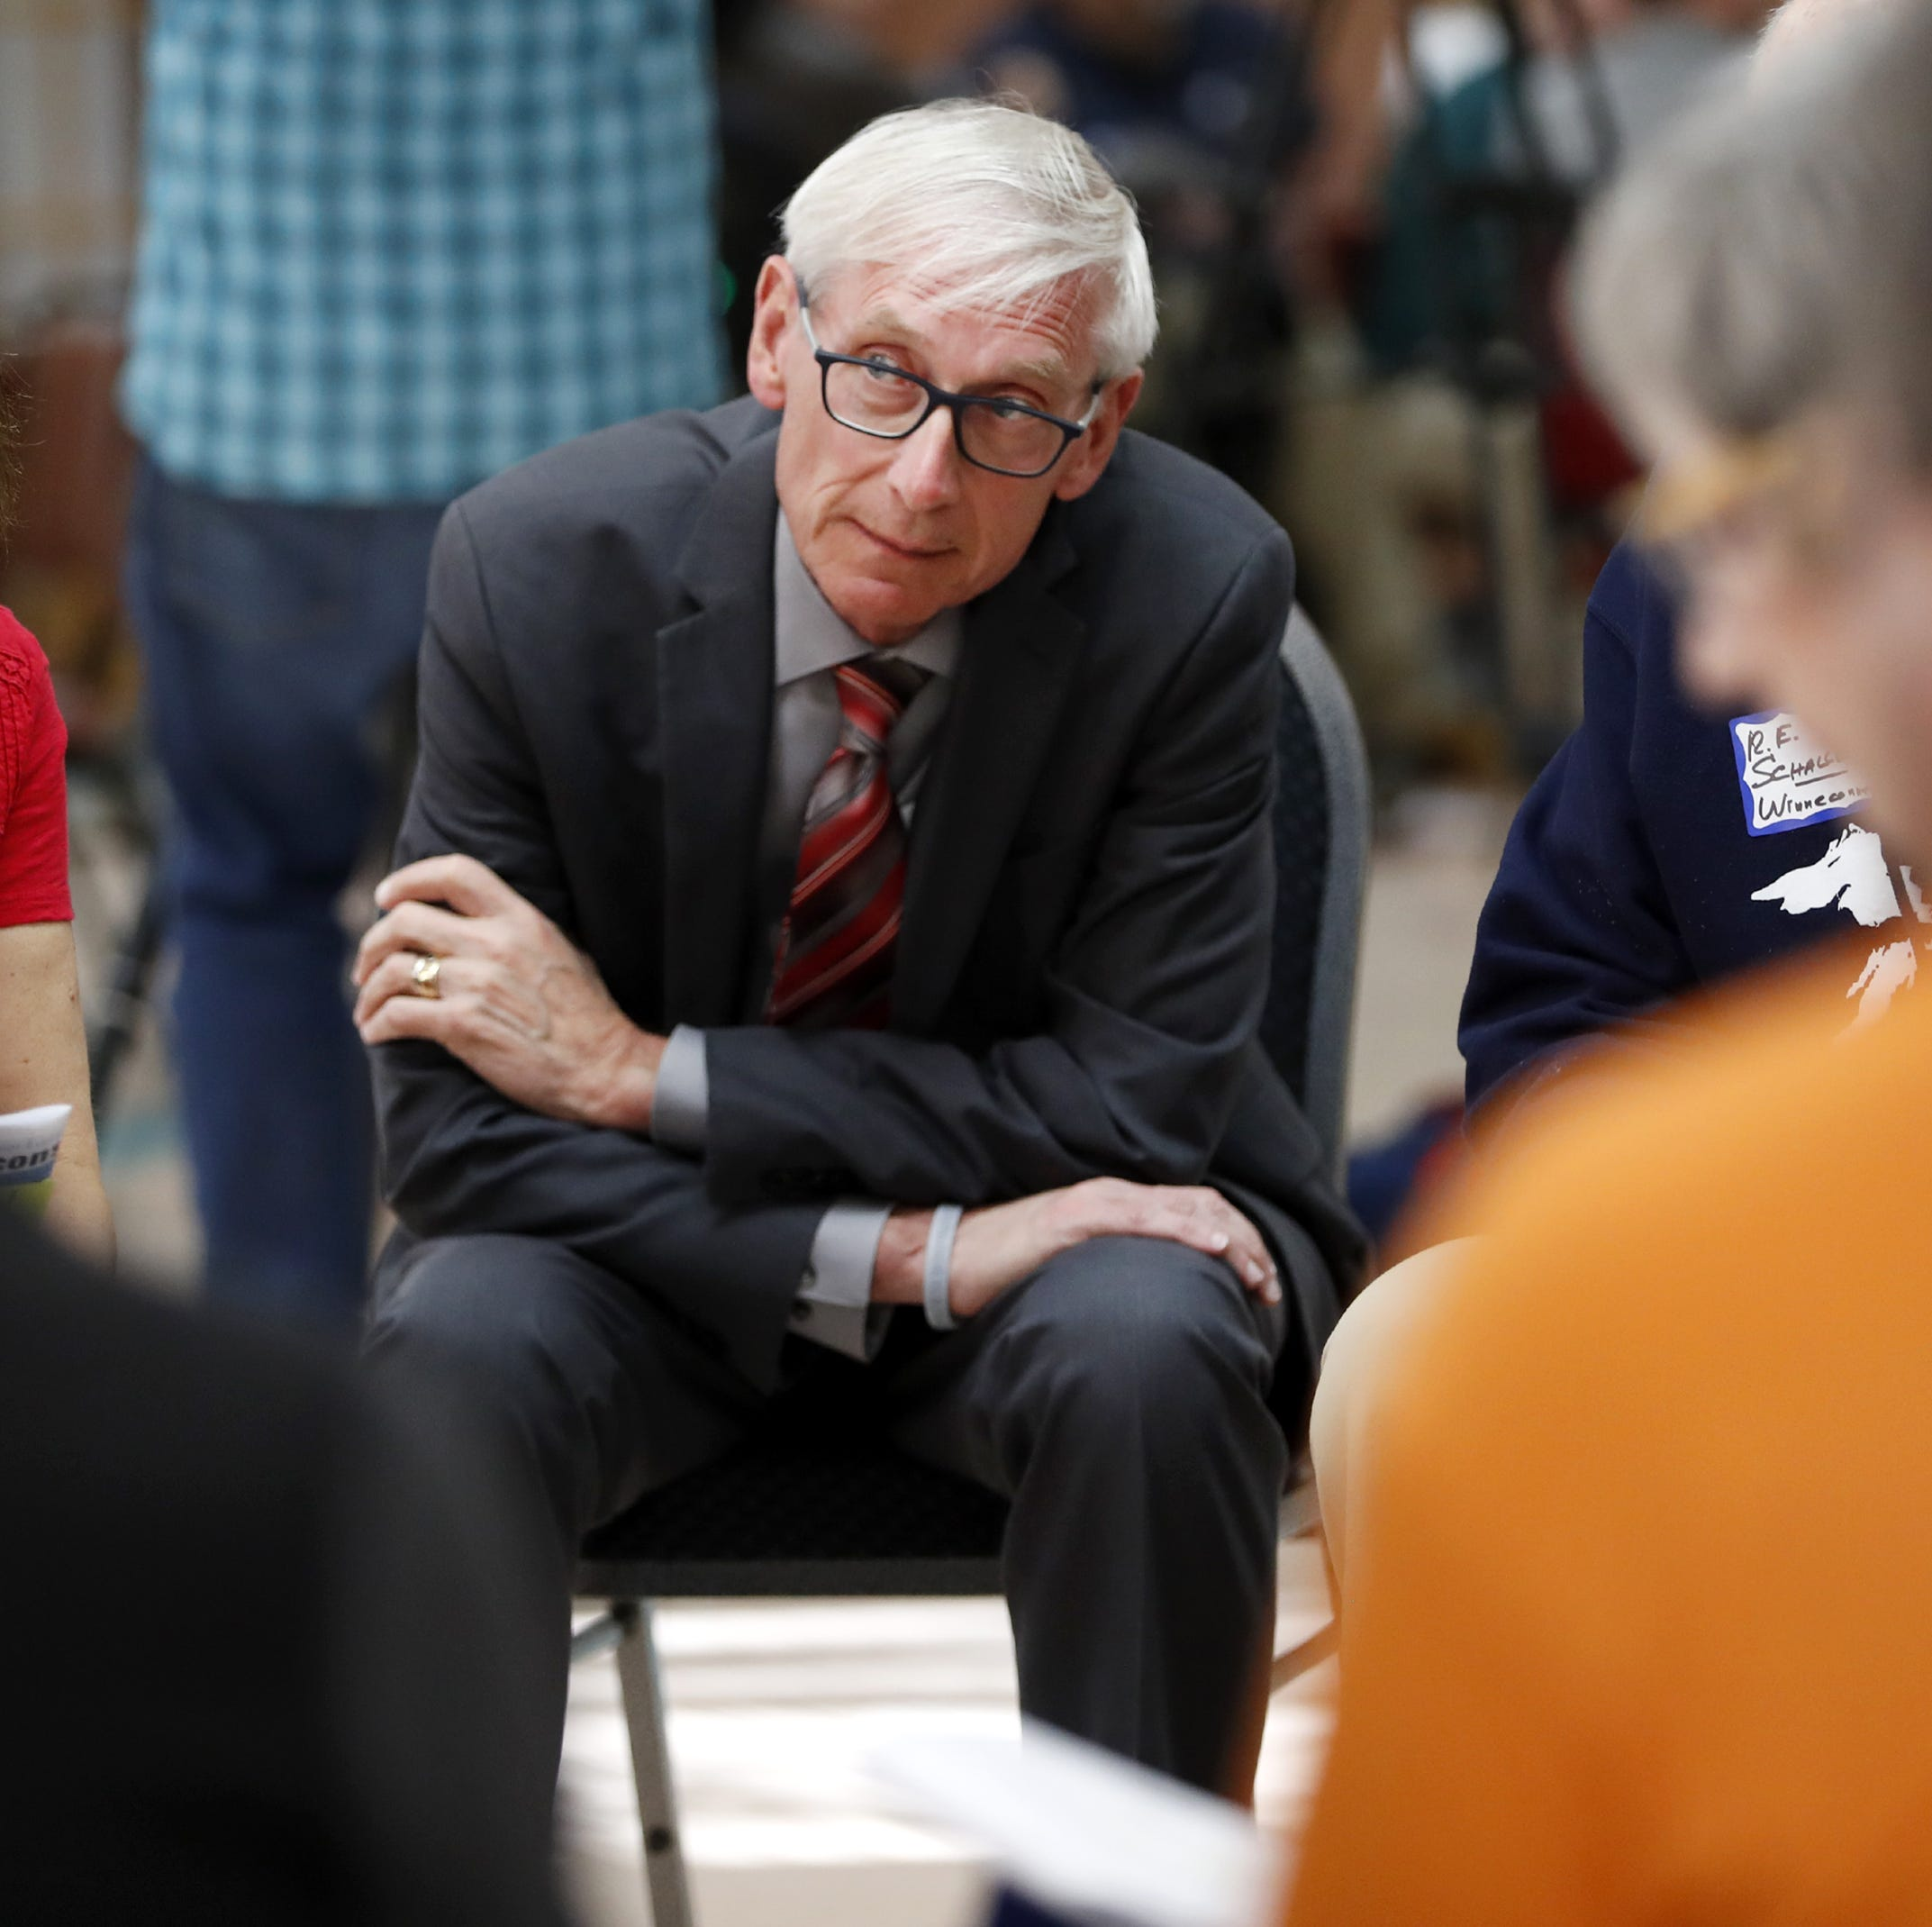 Health care, education among hot topics at Tony Evers' budget listening session in Oshkosh